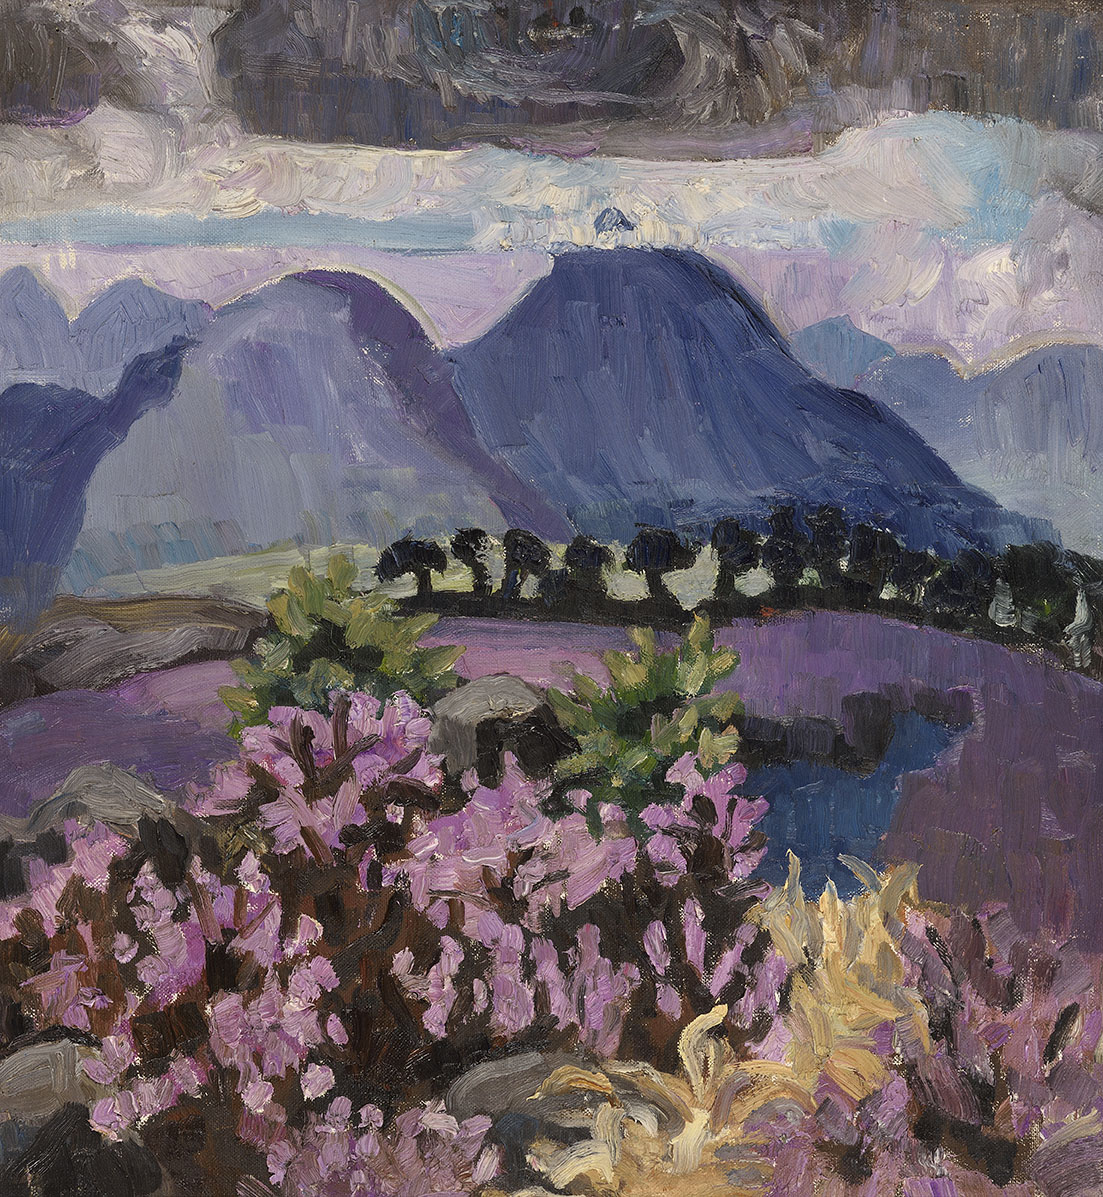 Lucy Harwood (1893-1972)    Landscape with Blue Mountain,  Oil on canvas, 24 x 22 in  [CAS 55]